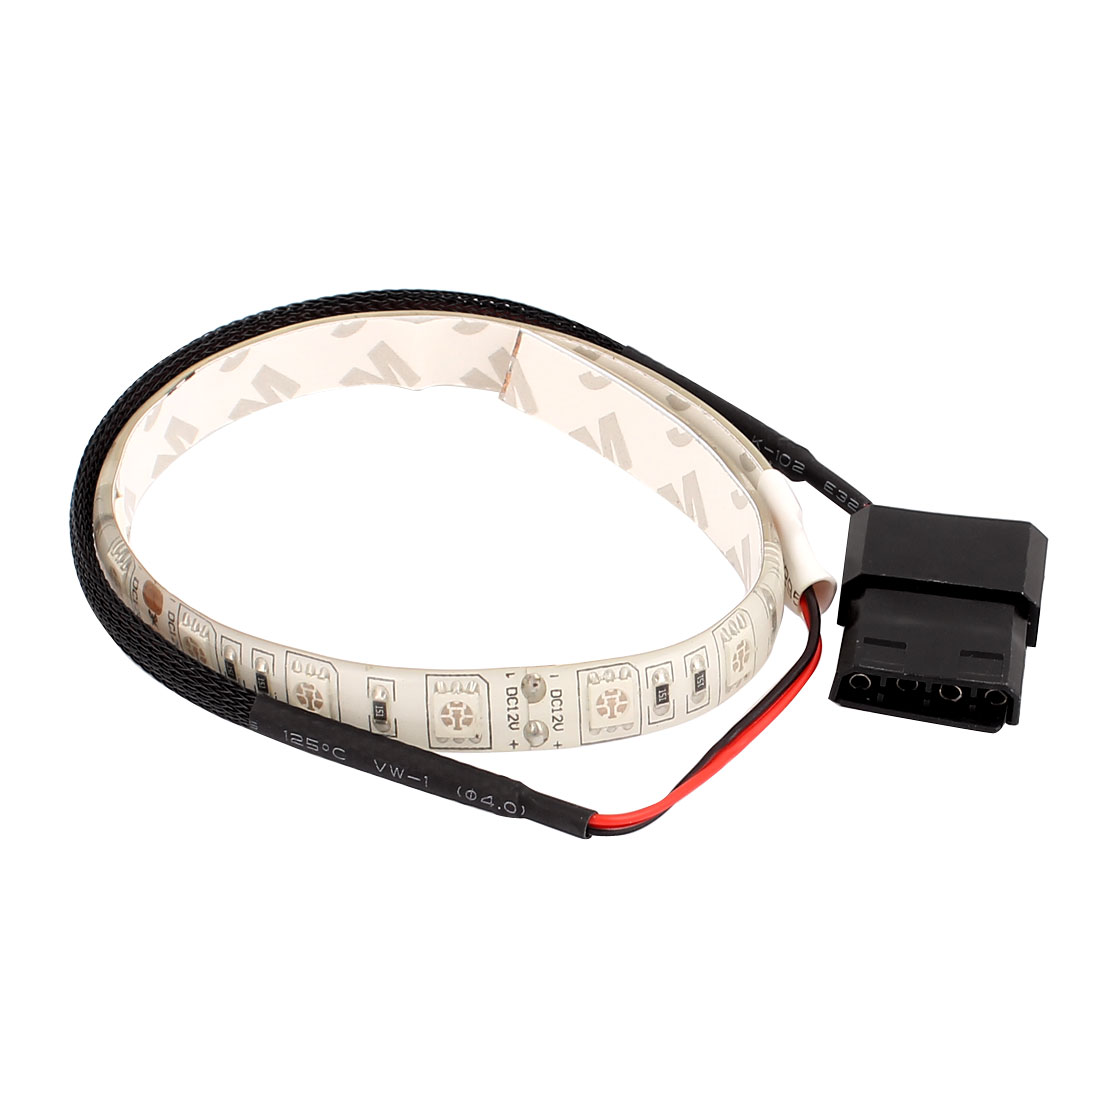 DC 12V 4Pin 17 LED SMD Flexible Green Light Strip for PC Computer Case